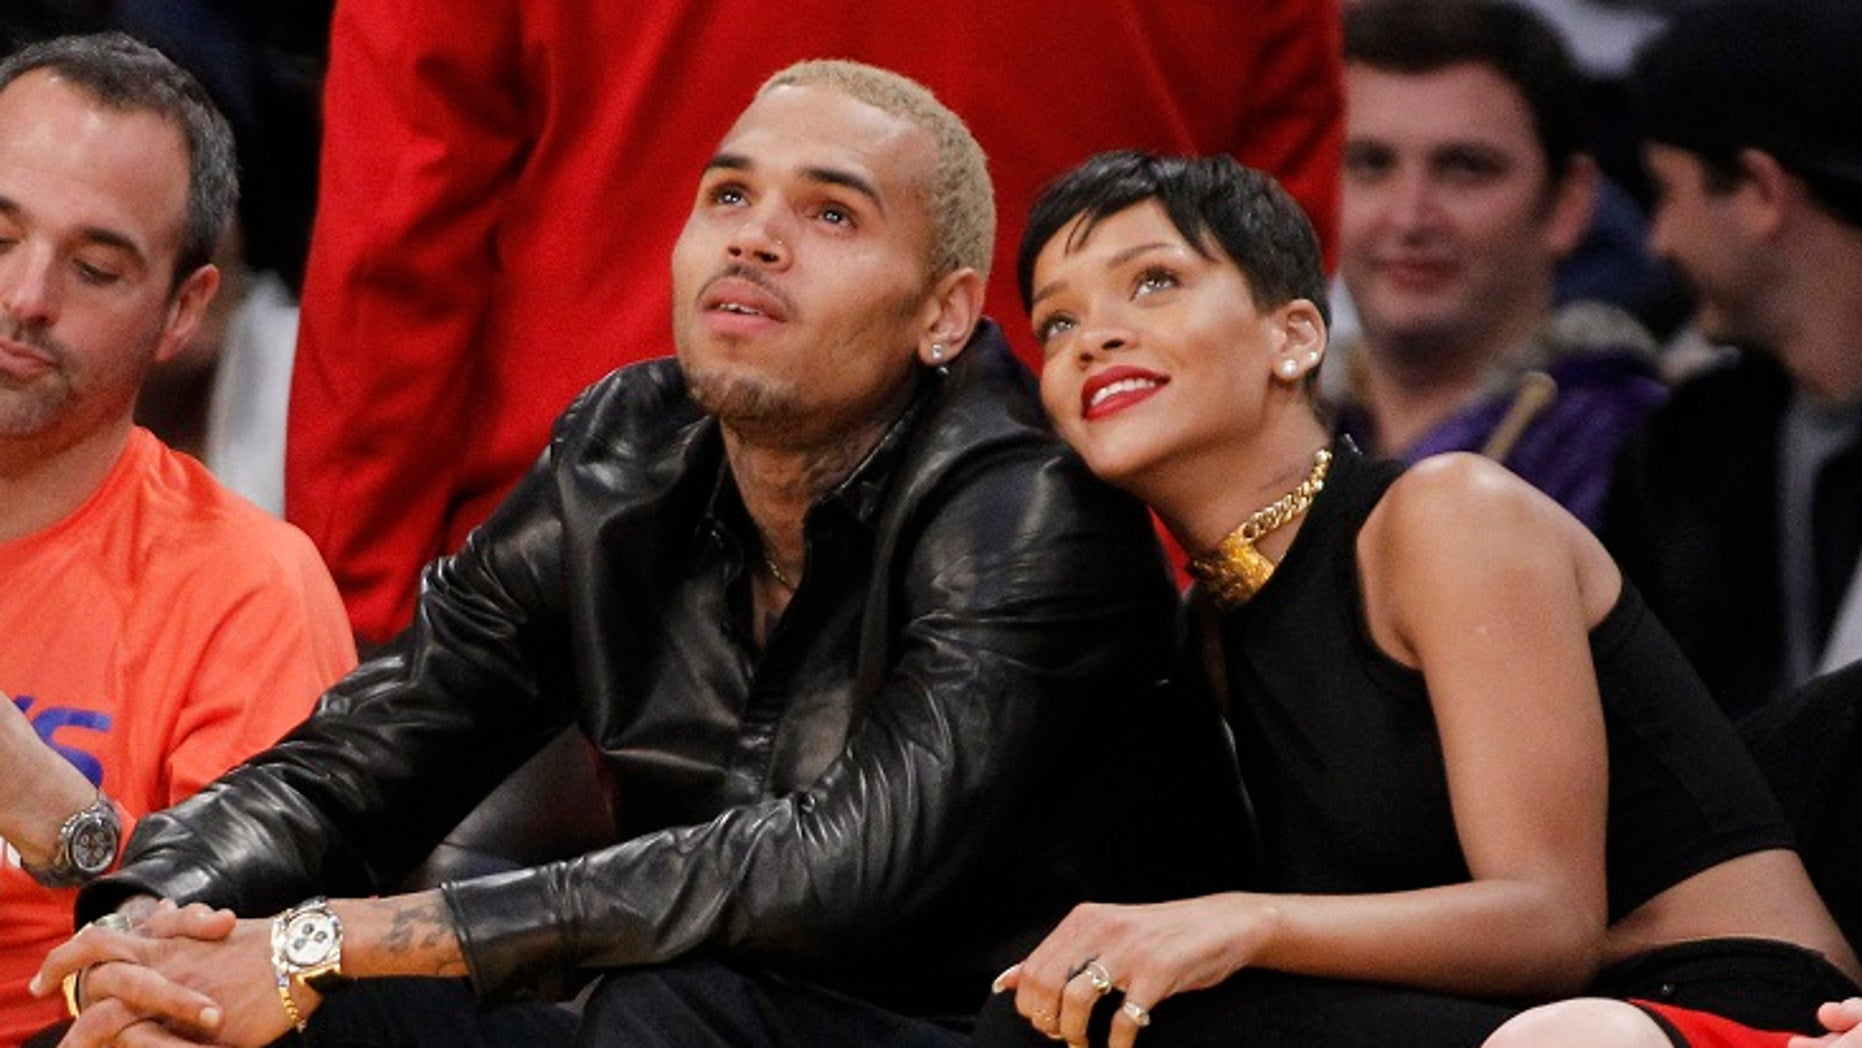 Rihanna fans furious after Chris Brown comments on her ...